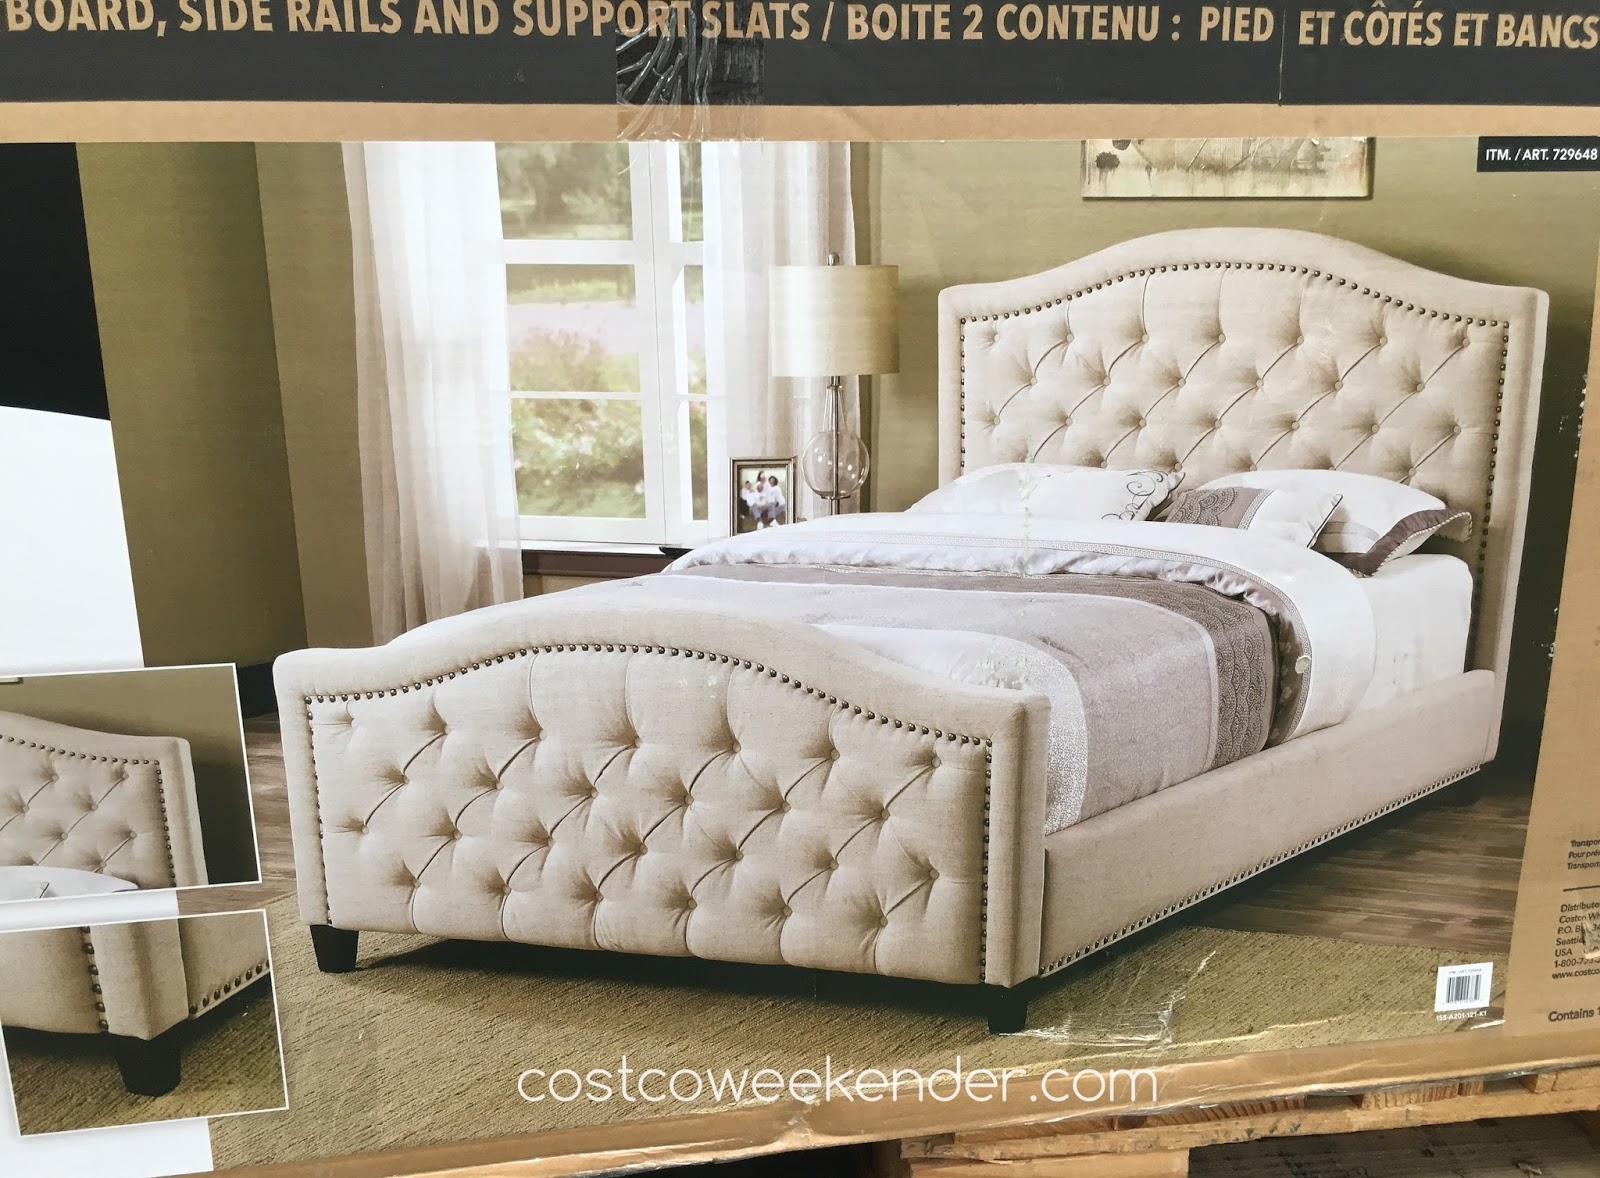 Pulaski furniture queen upholstered bed costco weekender for Upholstered beds